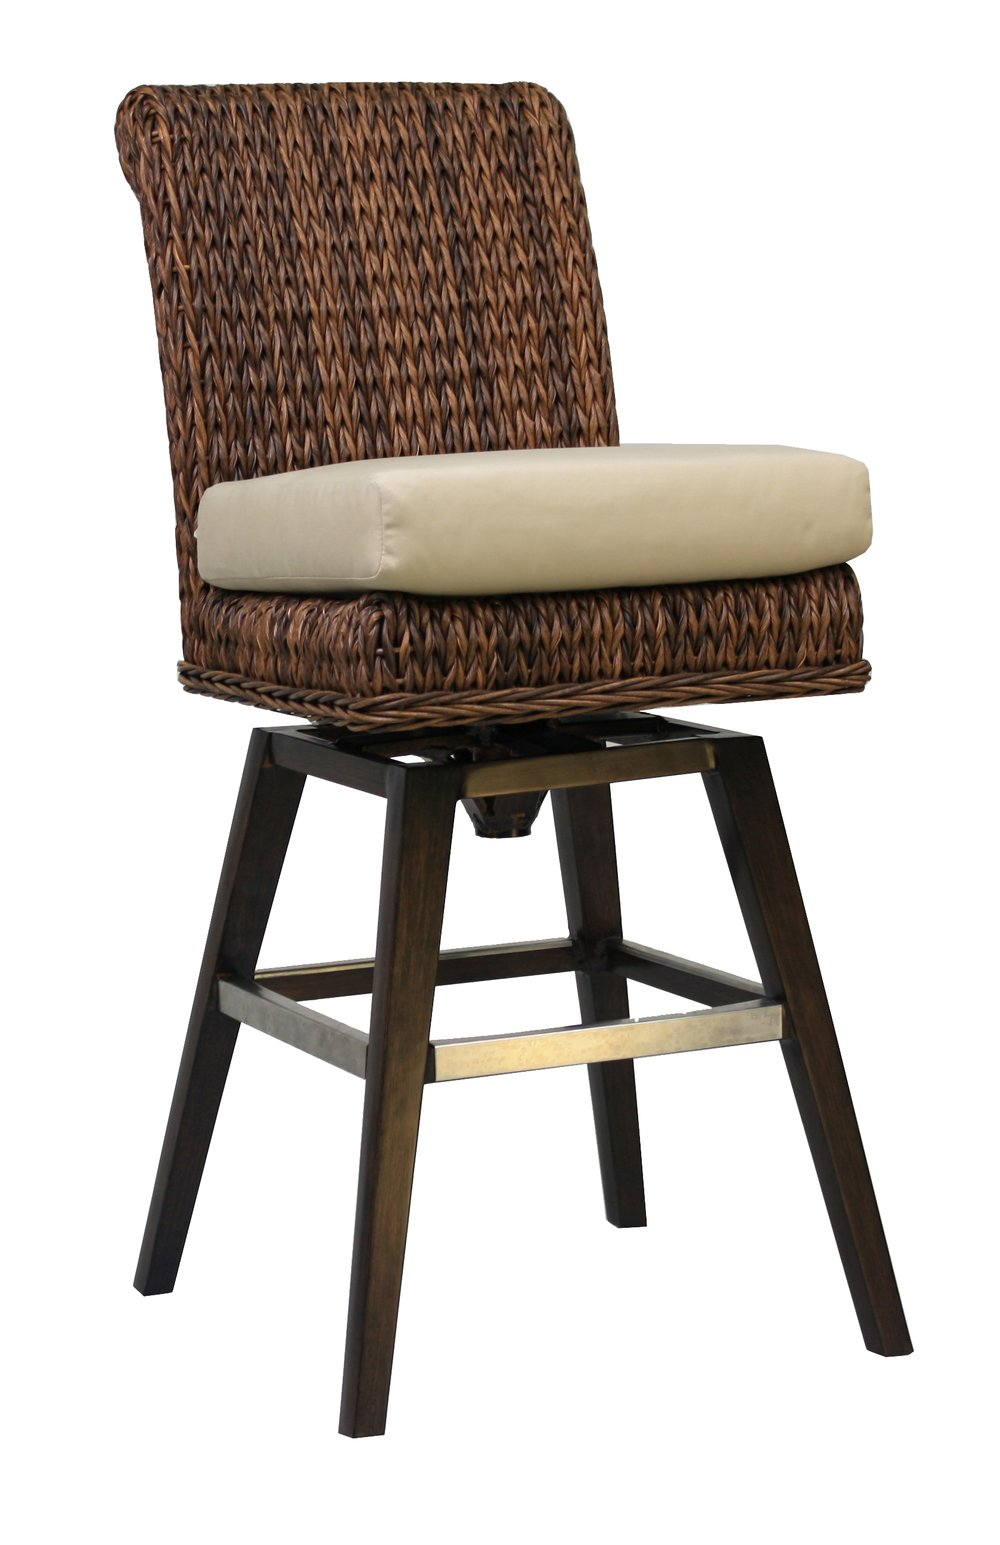 "973808 Antigua Swivel Bar Chair              25.75"" x  20.25""  x  45.5"""